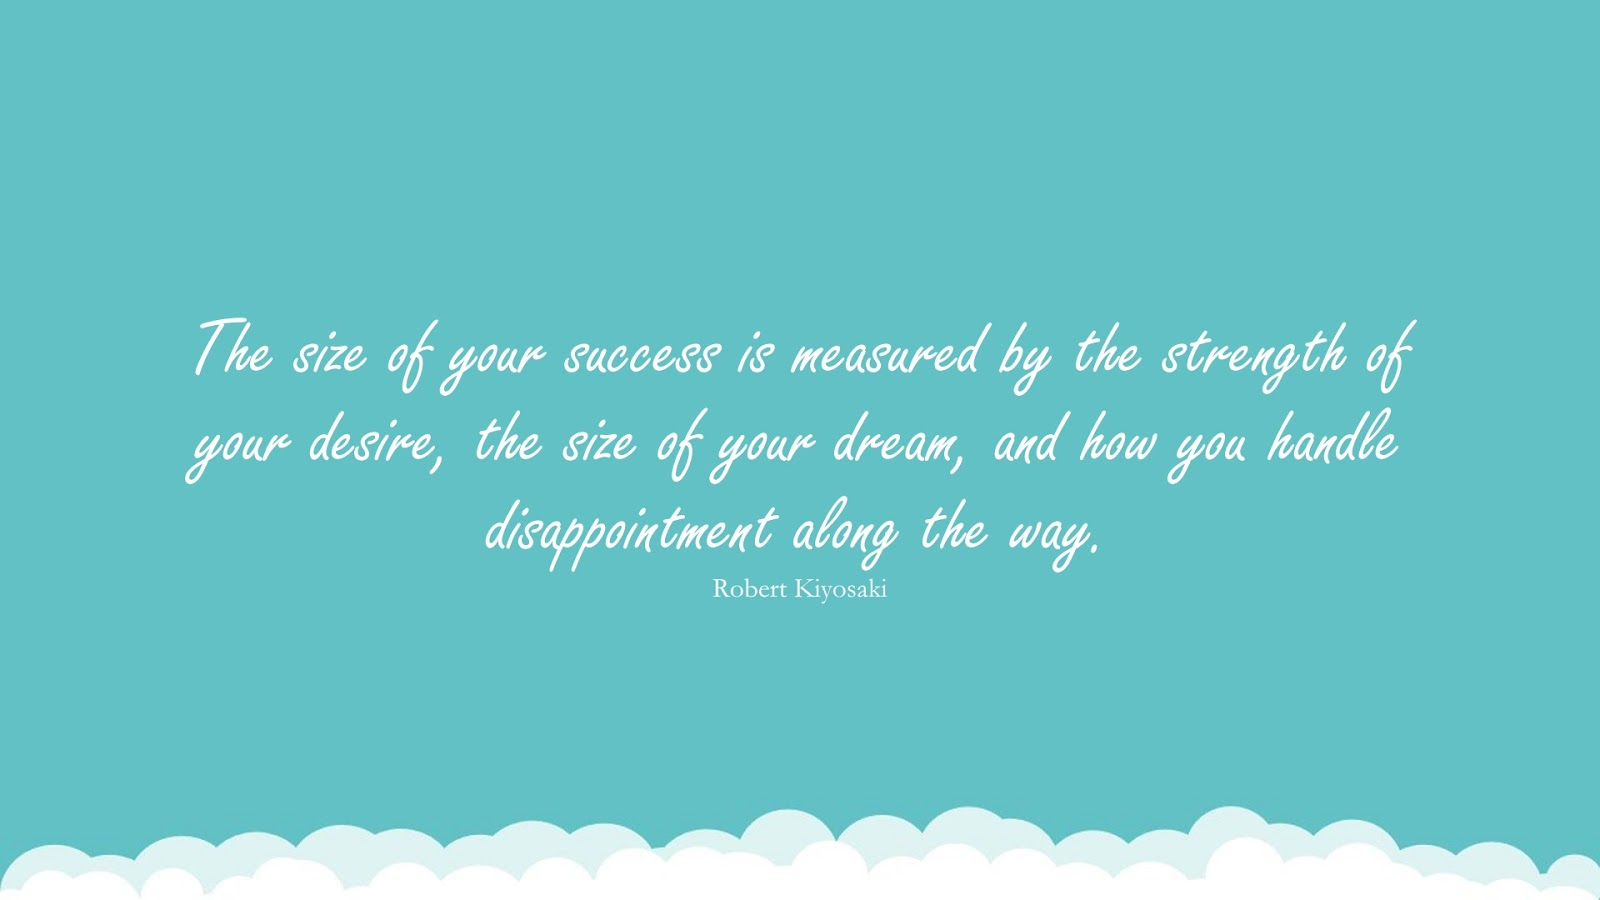 The size of your success is measured by the strength of your desire, the size of your dream, and how you handle disappointment along the way. (Robert Kiyosaki);  #MotivationalQuotes